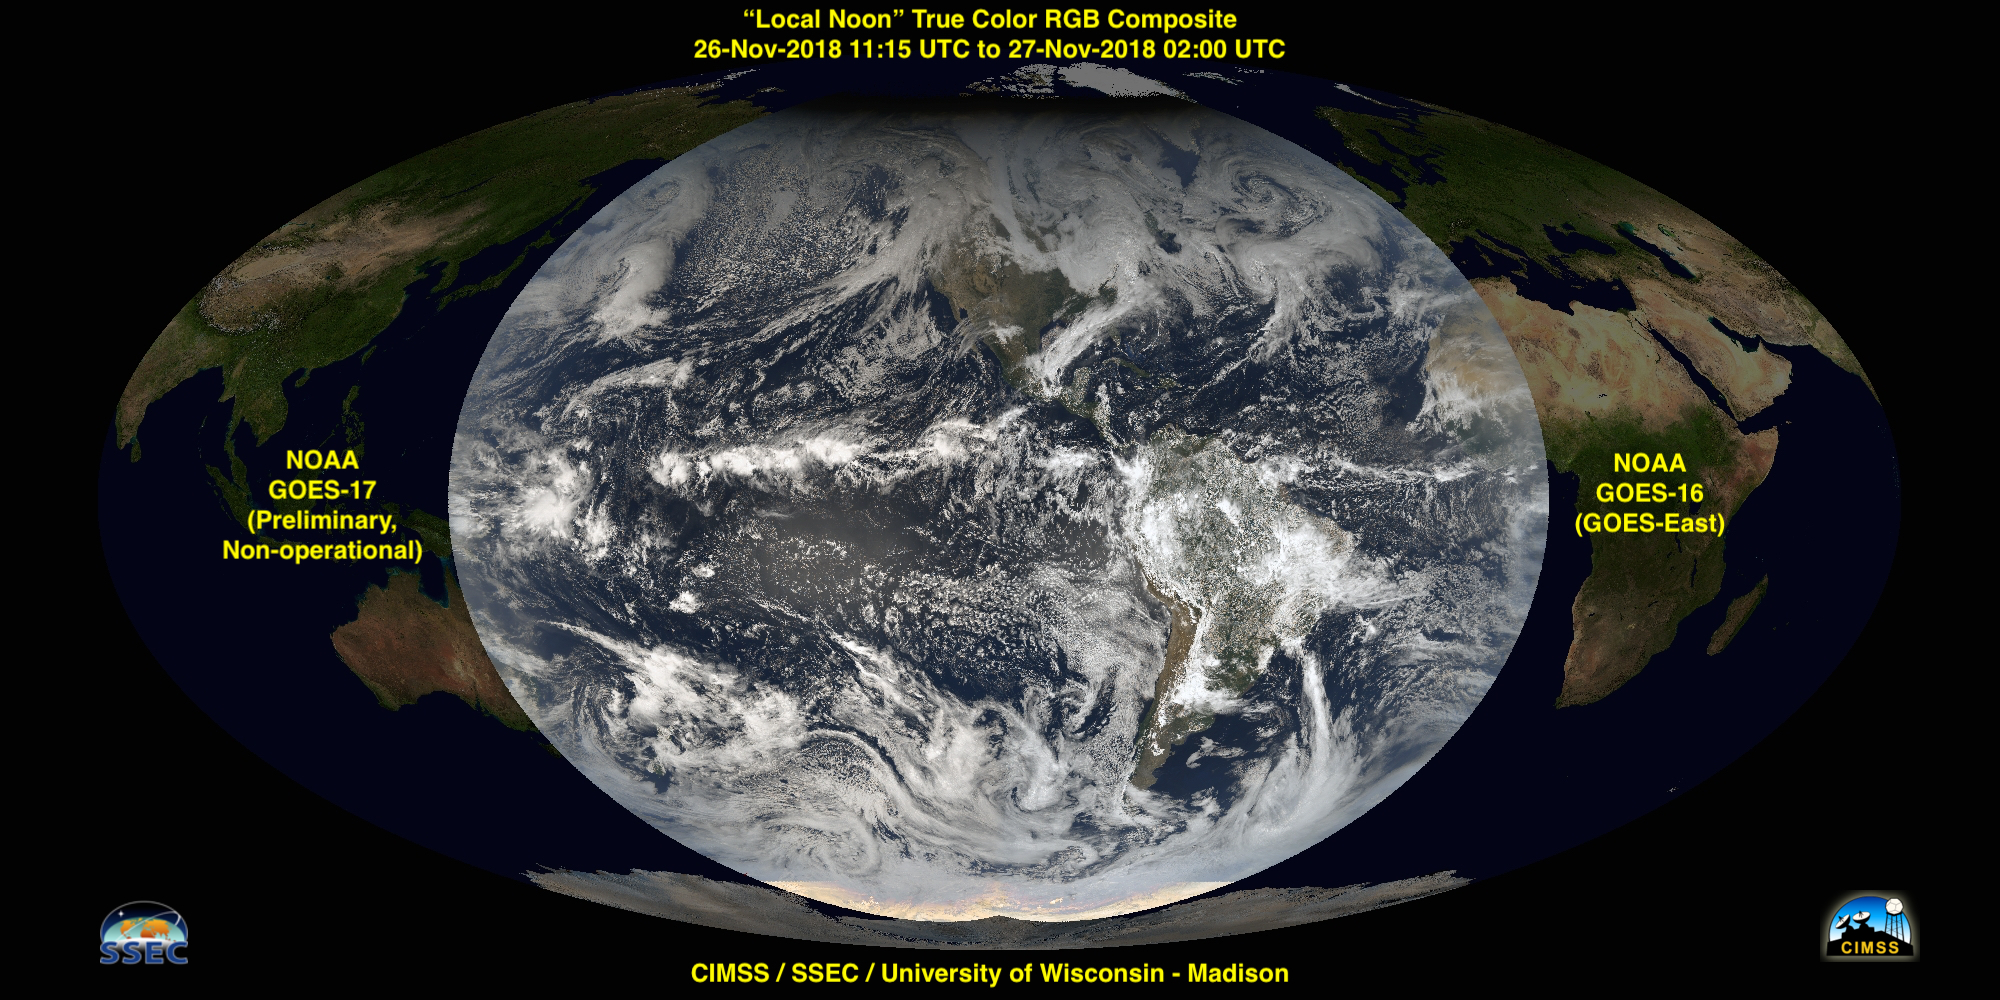 GOES-17 / GOES-16 True Color RGB composite [click to enlarge]